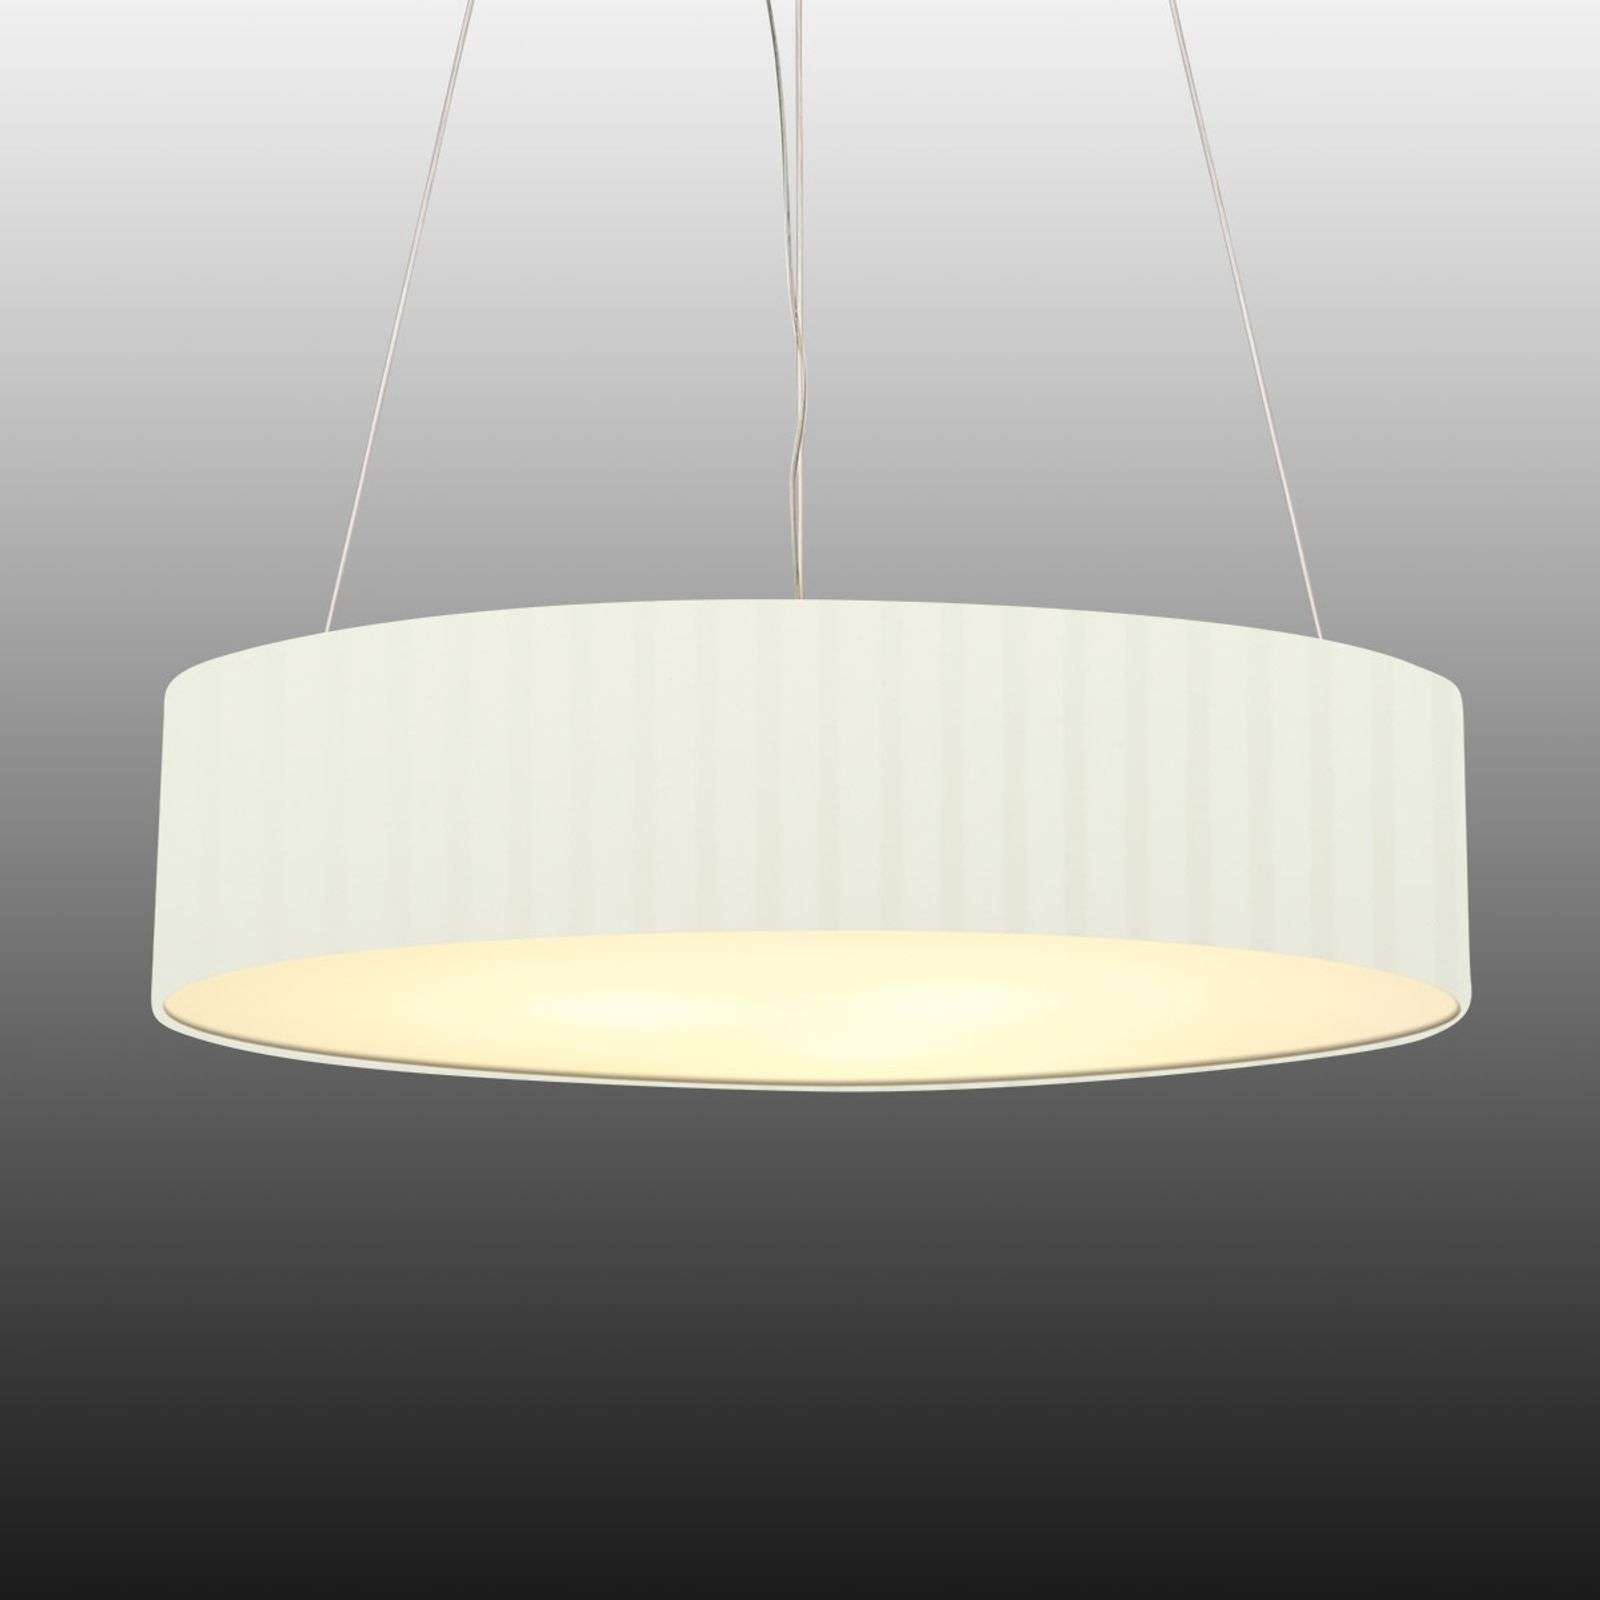 Hanglamp Benito, rond, 120 cm